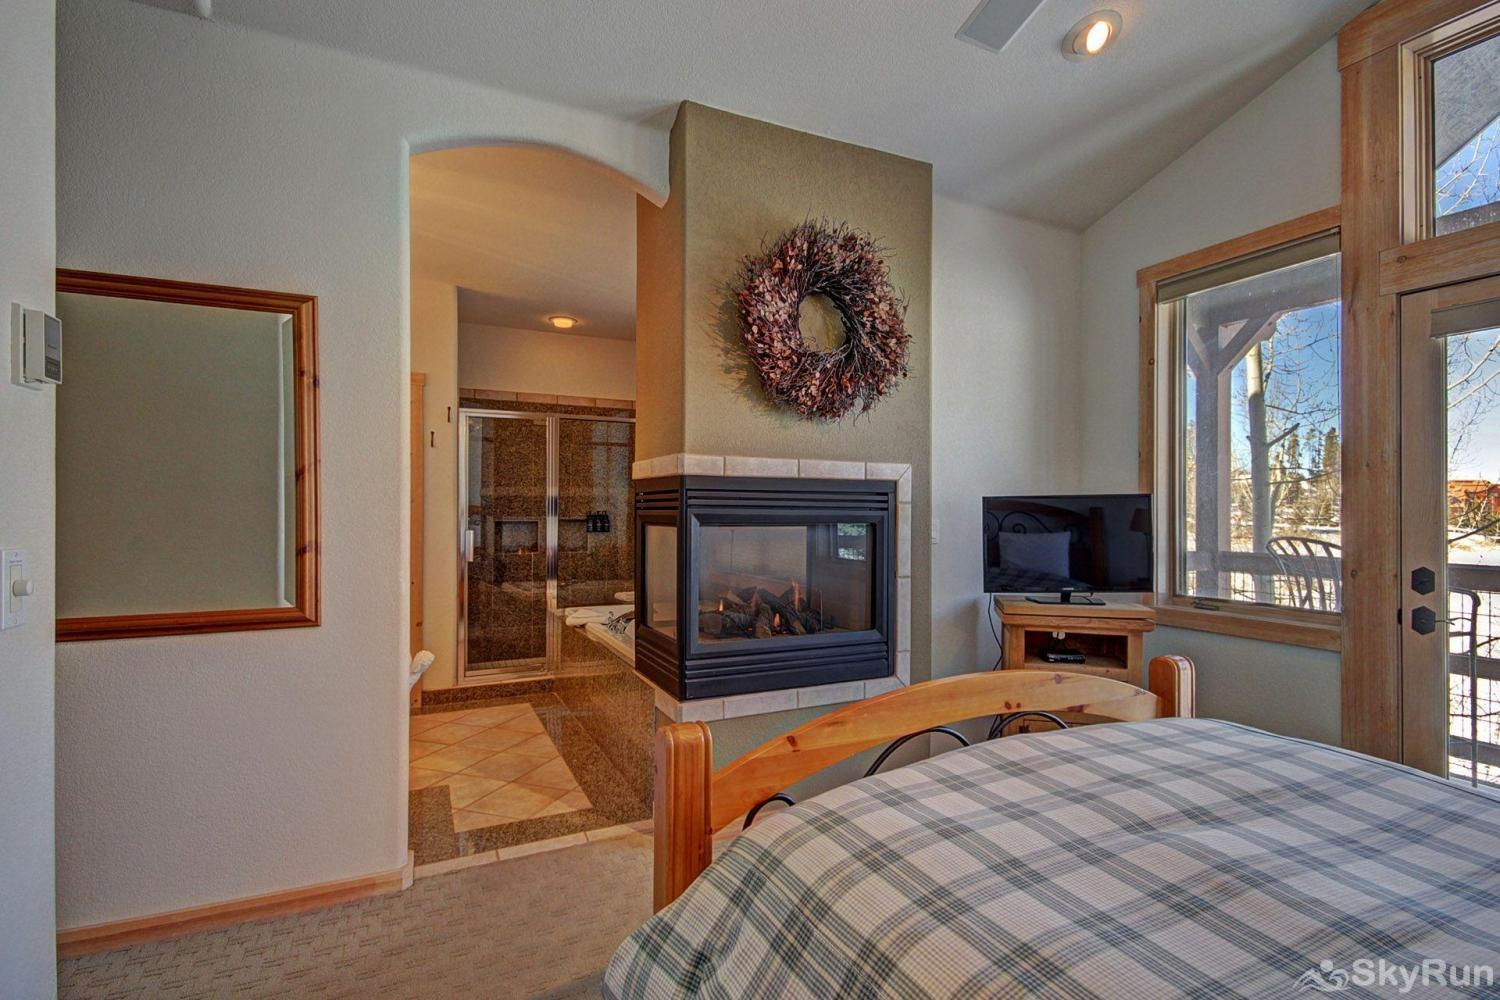 EN402 Ranch at Eagles Nest 3BR 4BA Master Suite with HD TV, gas fireplace